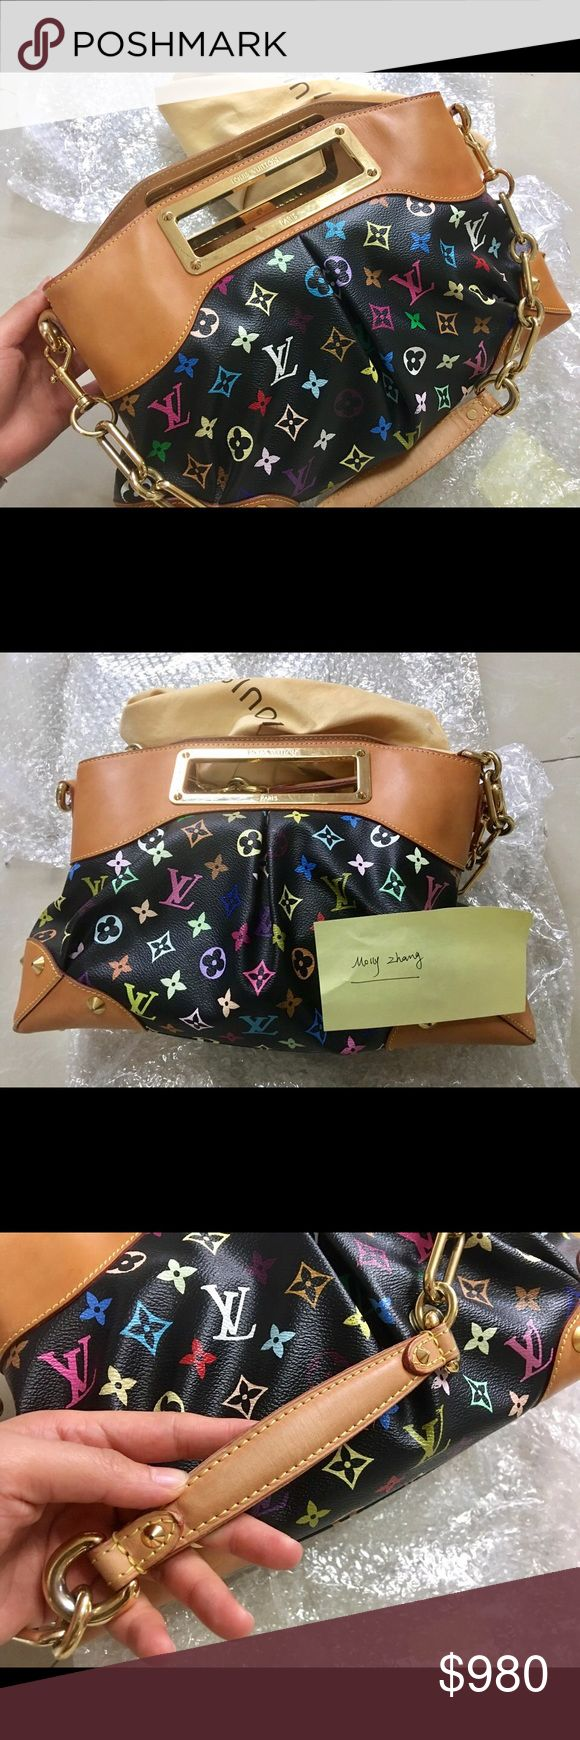 Louis Vuitton Judy MM $785 PayPal invoice and Shipped • I am selling Louis Vuitton Judy MM • Flaws are disclosed in the Photos  • Louis Vuitton has stopped making Judy Bags, so it would be quite a collection. • Come with Dust Bag • Guarantee 100% Authentic • Date Code ( this is what Judy Bag's date code looks like, I took the best I could to make it clear to see) Louis Vuitton Bags Shoulder Bags